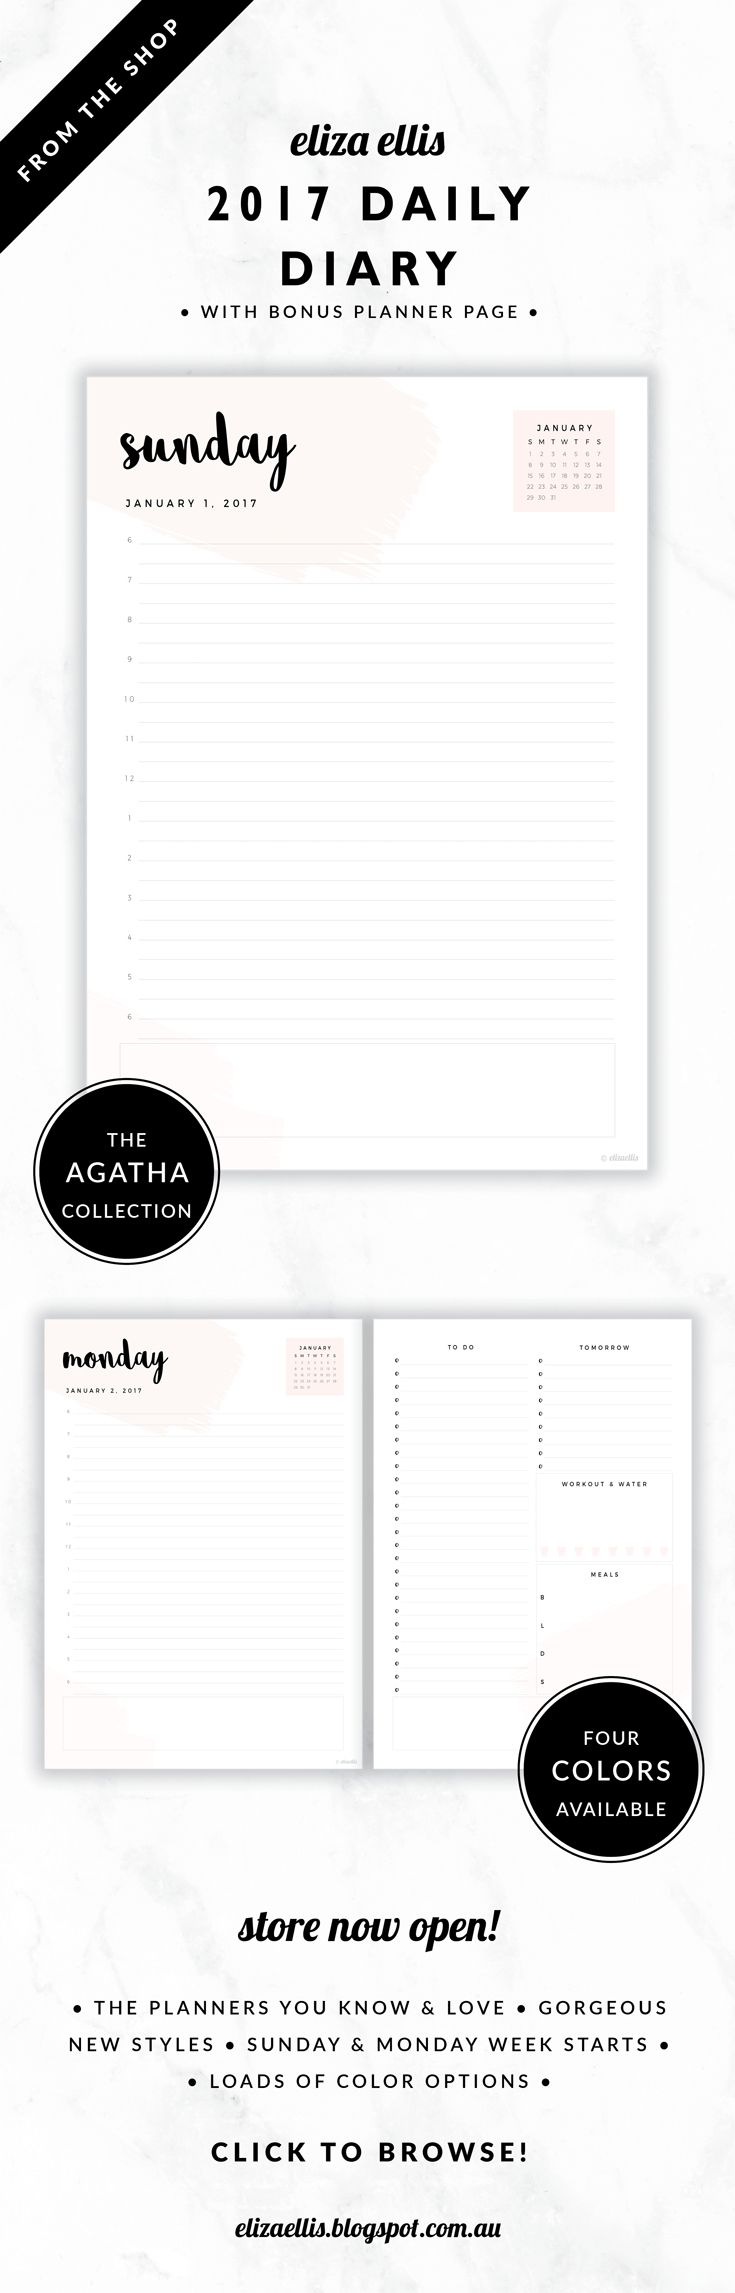 2017 Printable Daily Diary with Bonus Planner Page // The Agatha Collection by Eliza Ellis. Pretty paint swatch design with hand drawn calligraphy font. Includes quick reference calendar and plenty of room for notes. Planner page includes generous to do list, meal planner, tomorrow list and exercise and water planner. Available in 4 colors – petal, leaf, cloud and blossom. Monday and Sunday week starts included.